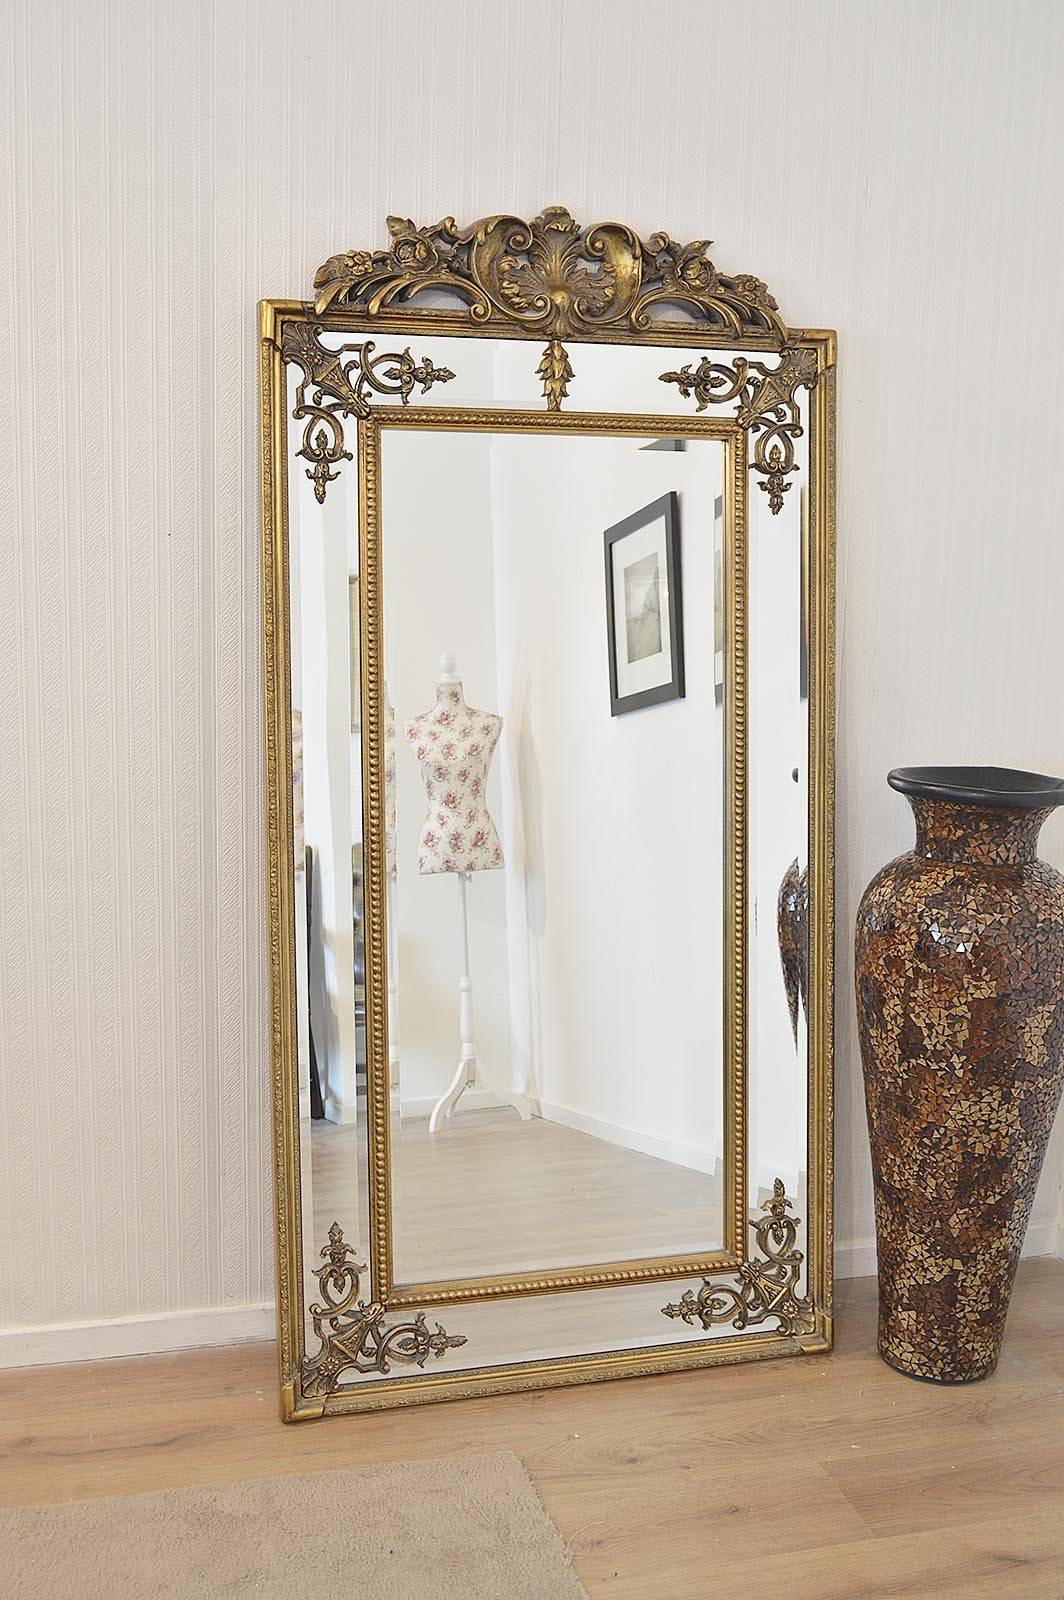 Ornate Mirrors For Sale 61 Beautiful Decoration Also Large Gold inside Antique Ornate Mirrors (Image 18 of 25)